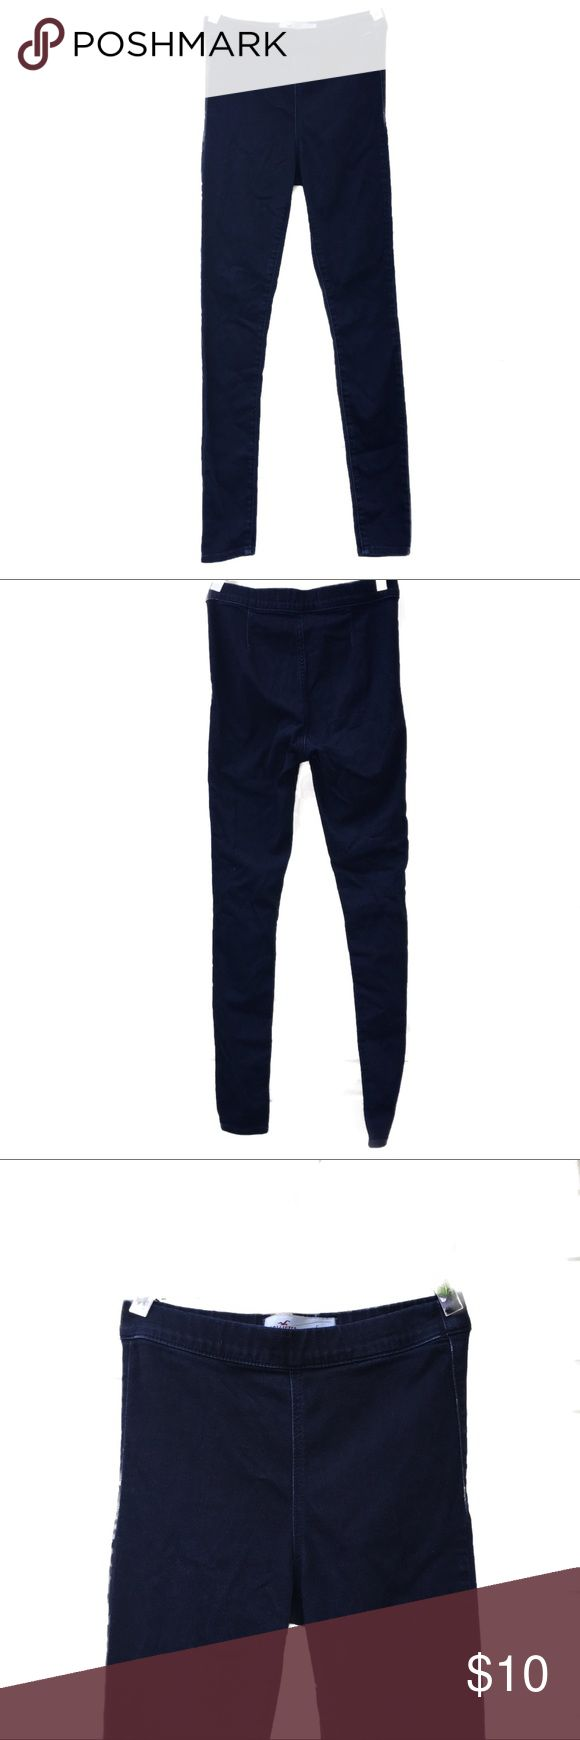 Hollister Leggings Leggings in GUC stretchy chambray material in a very dark blue wash. Hollister Pants Leggings